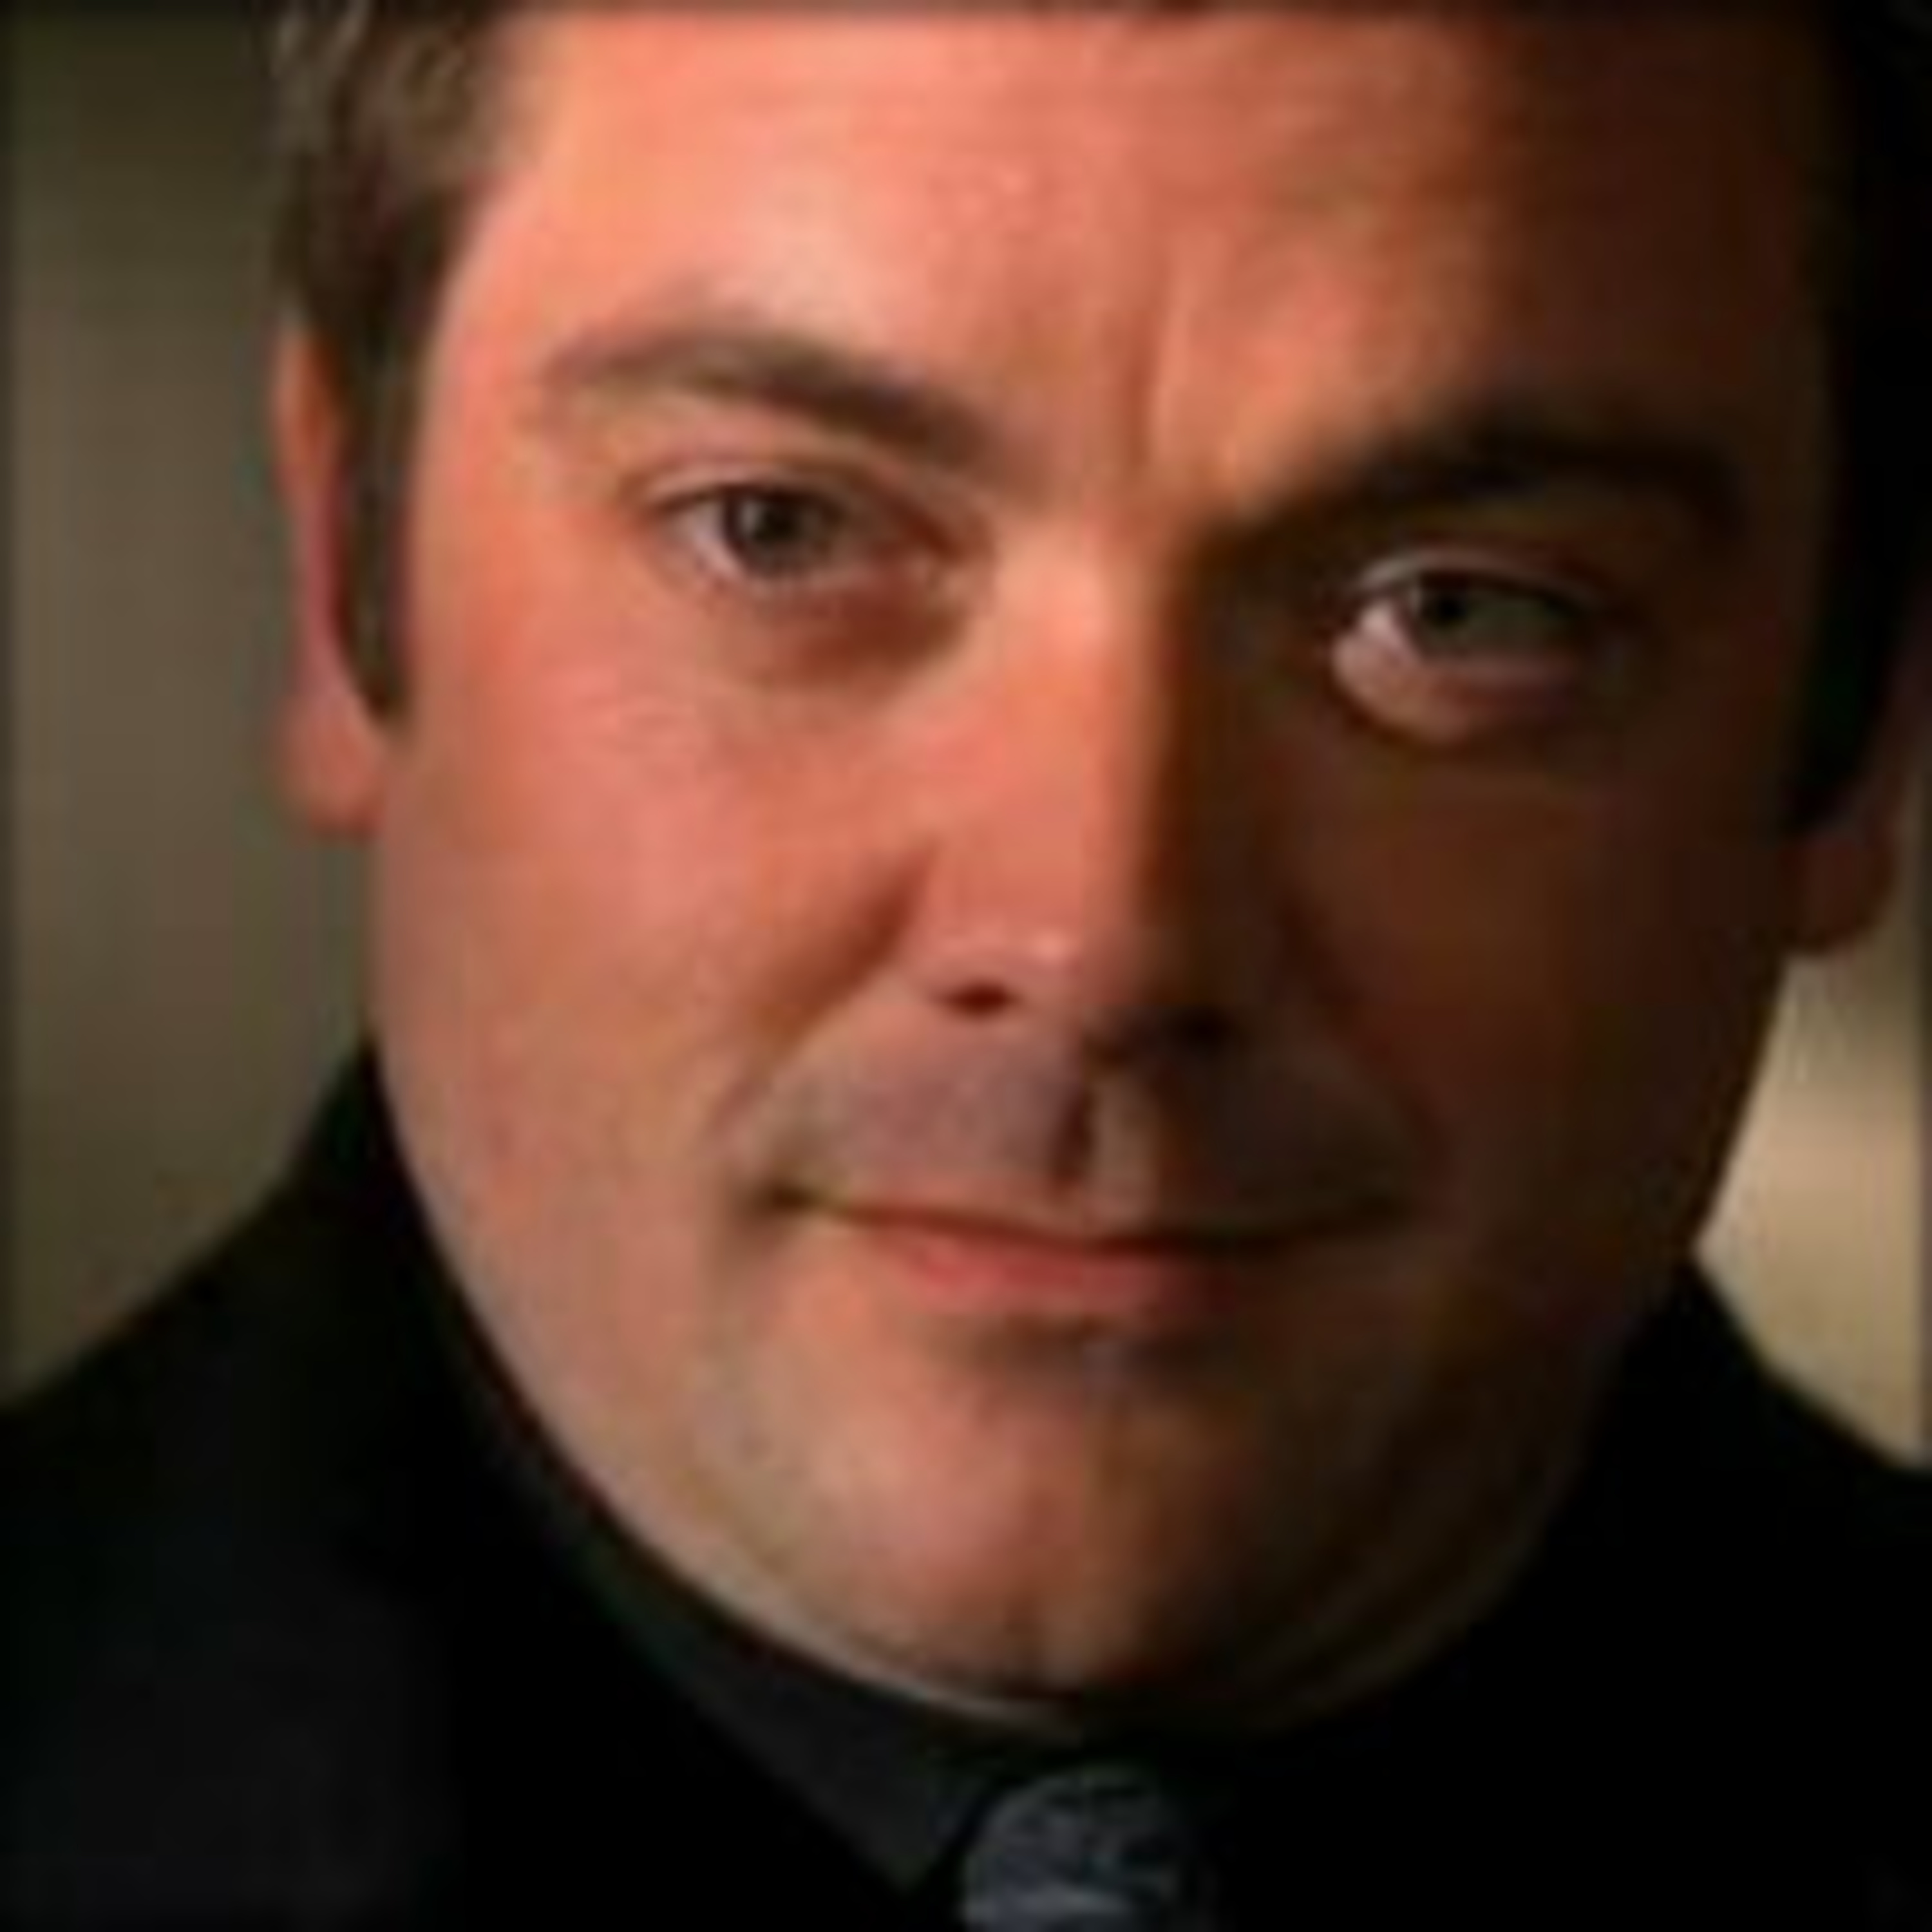 Supernatural - 666 Crowley - Fanfiction Reading Chapters 5 - 9